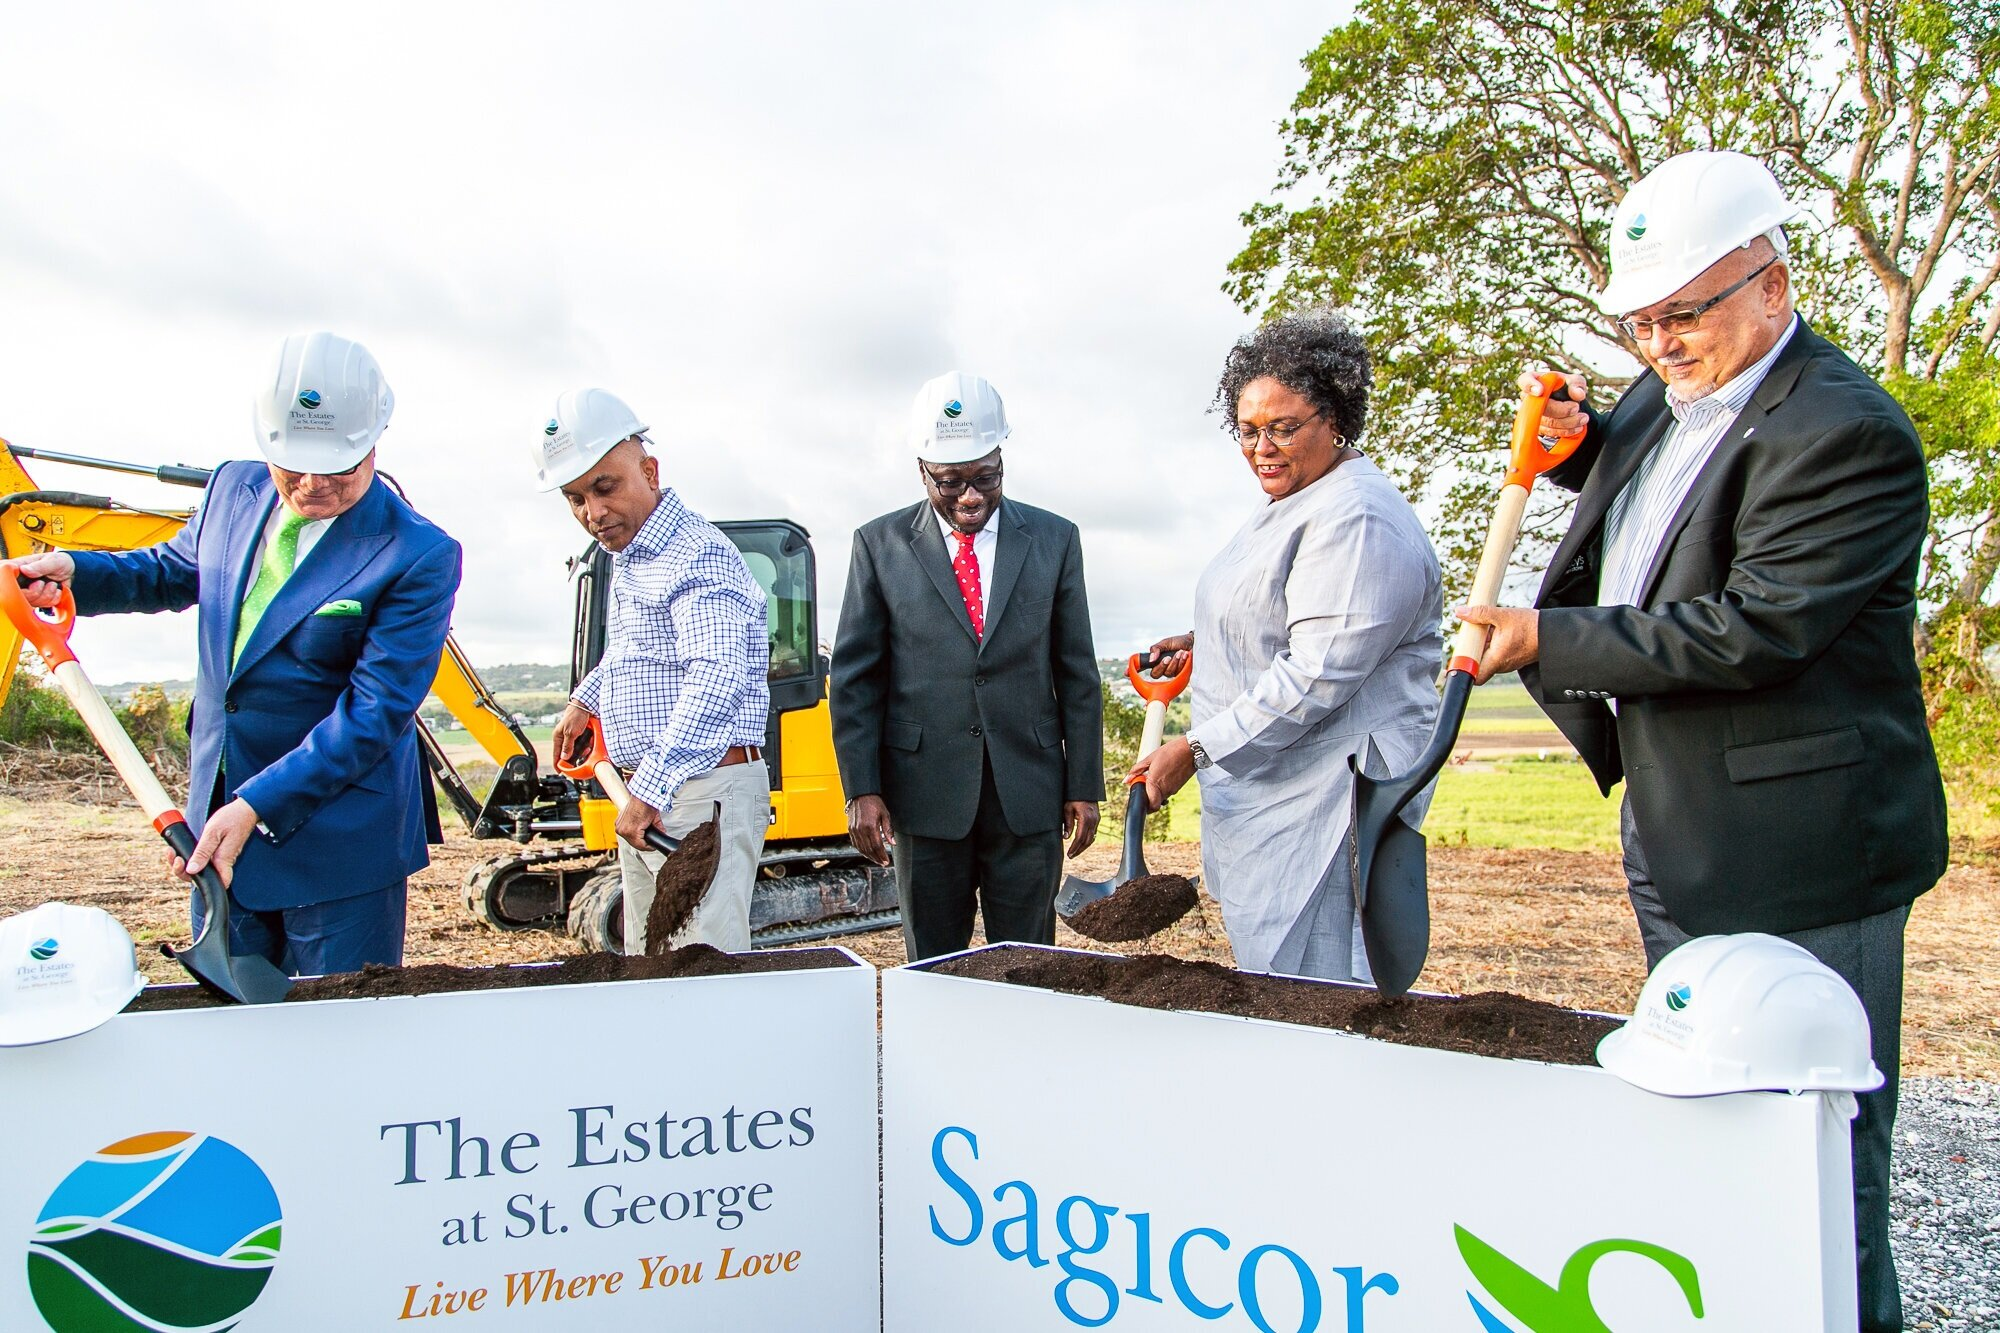 Barbados' Prime Minister Mia Mottley took part in the groundbreaking ceremony